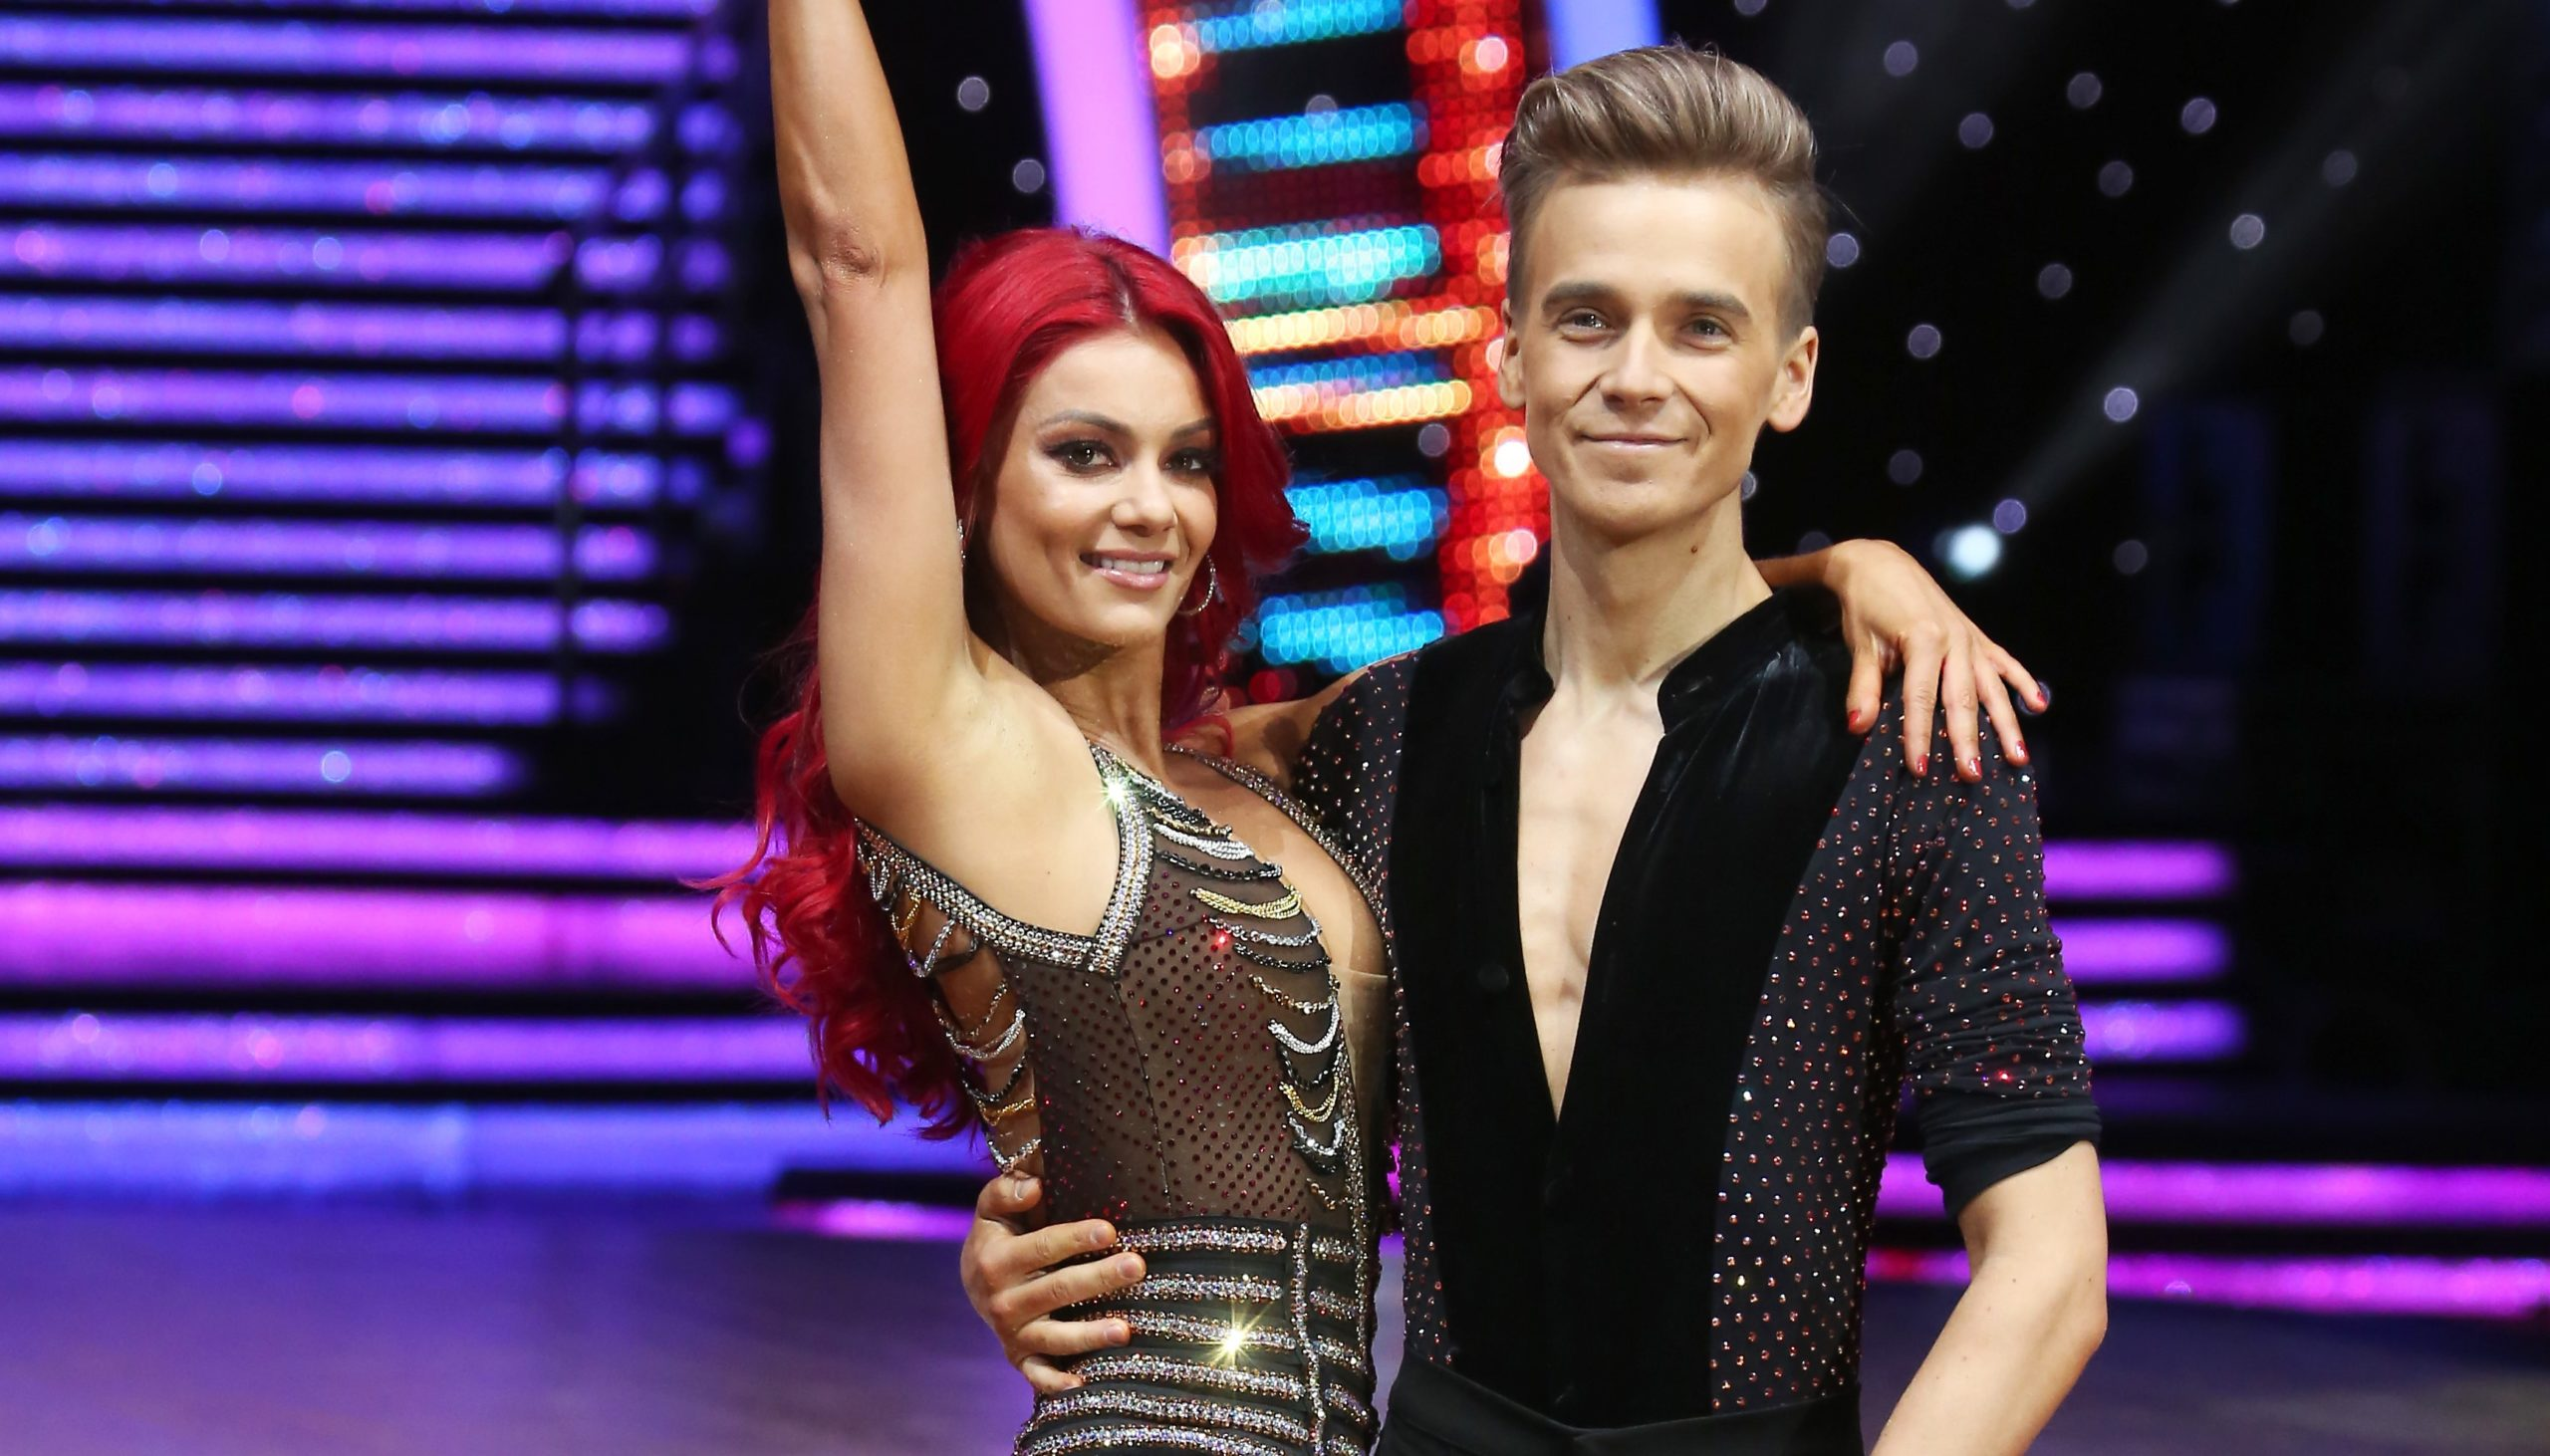 Strictly producers 'targeting young social media stars'